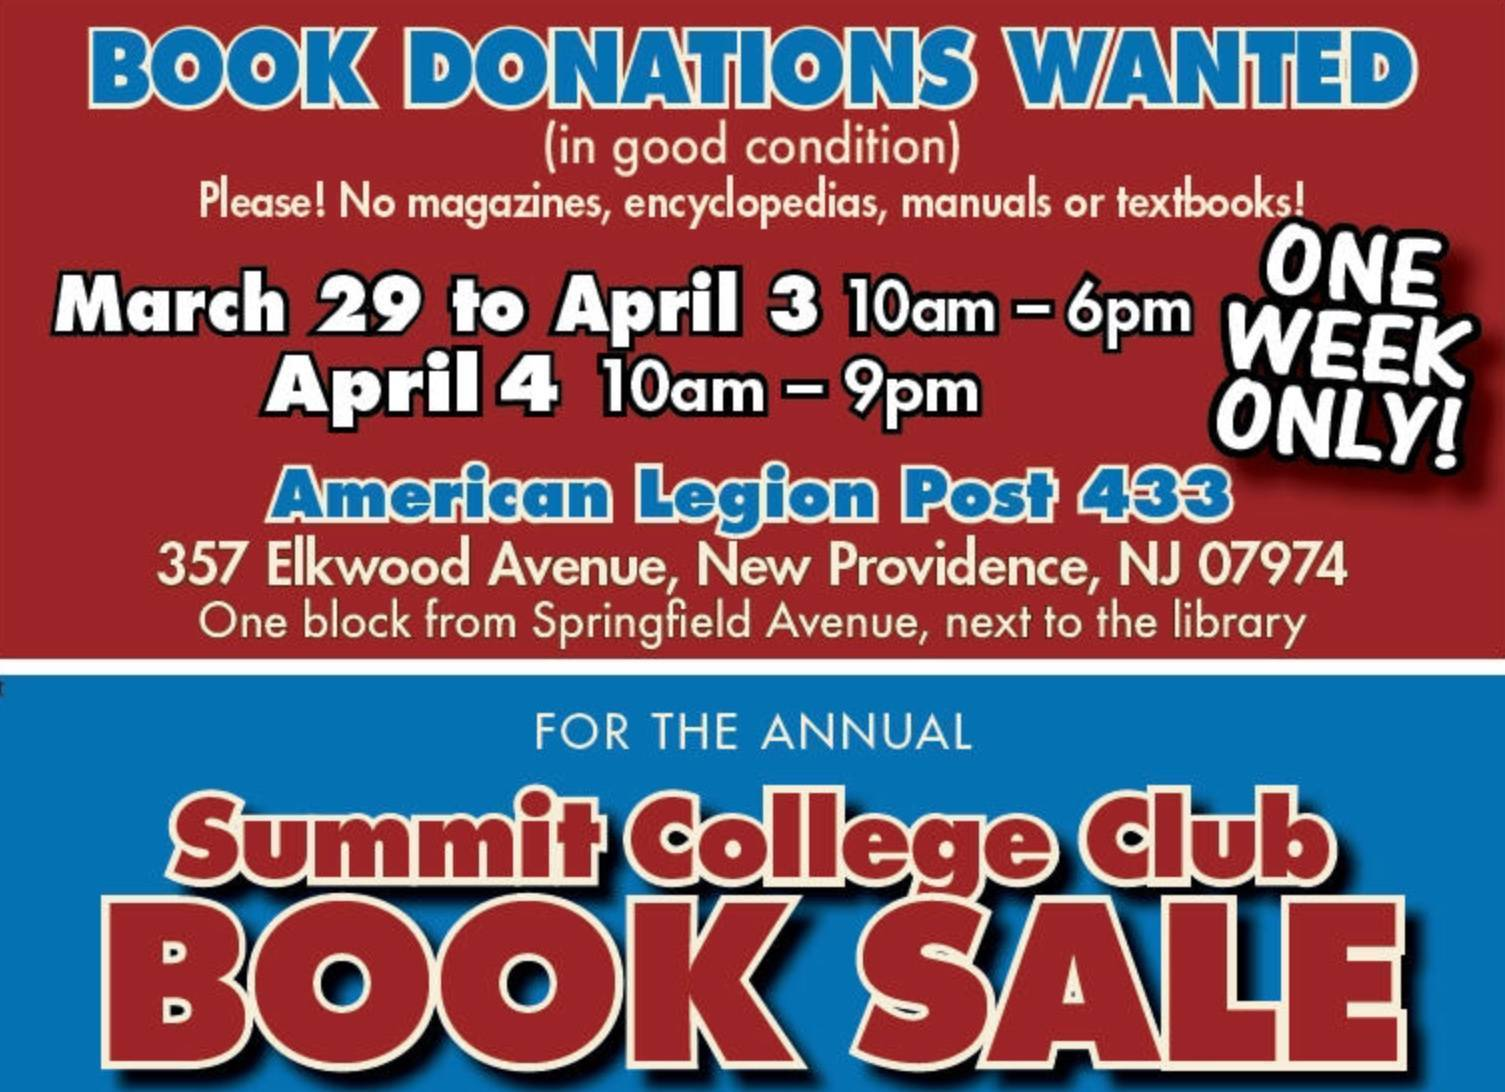 College Books For Sale >> Summit College Club Seeks Books For Annual Book Sale Tapinto